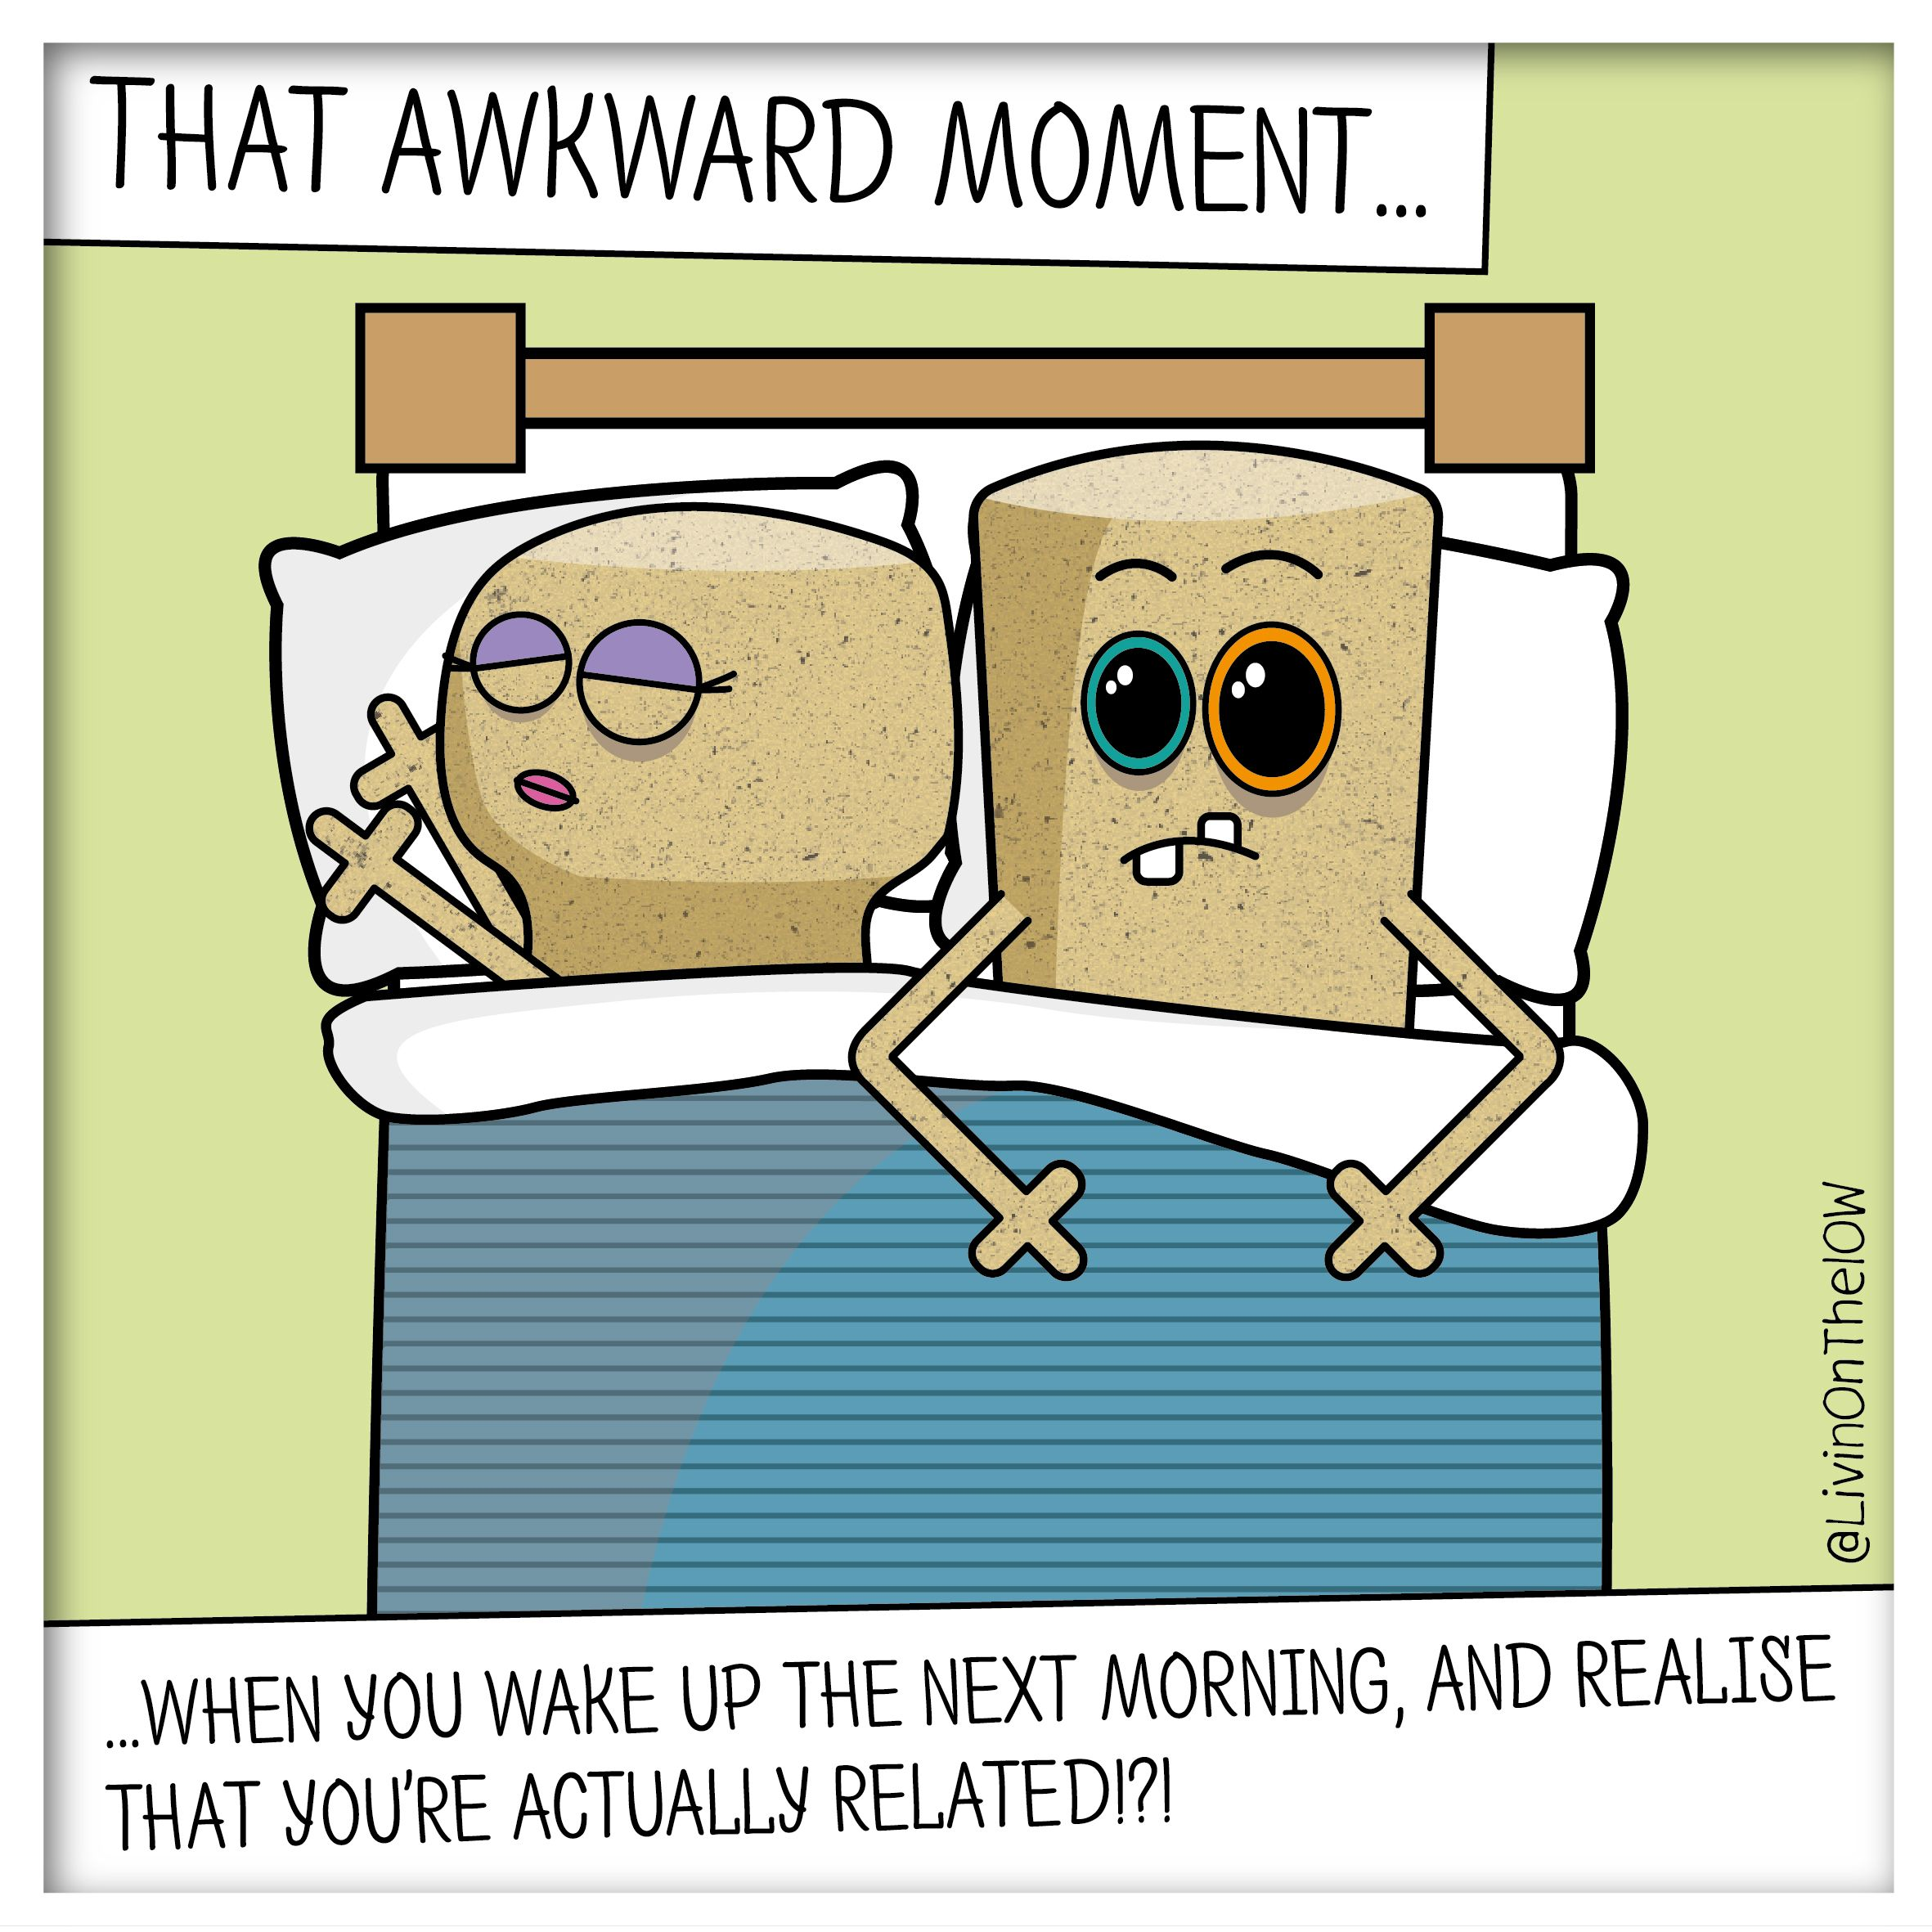 It's a small island, after all... #isleofwight #iow #banter #illustration #cartoon #2dart #graphicdesign #caulkheads #islandlife #humour #morningafter #bed